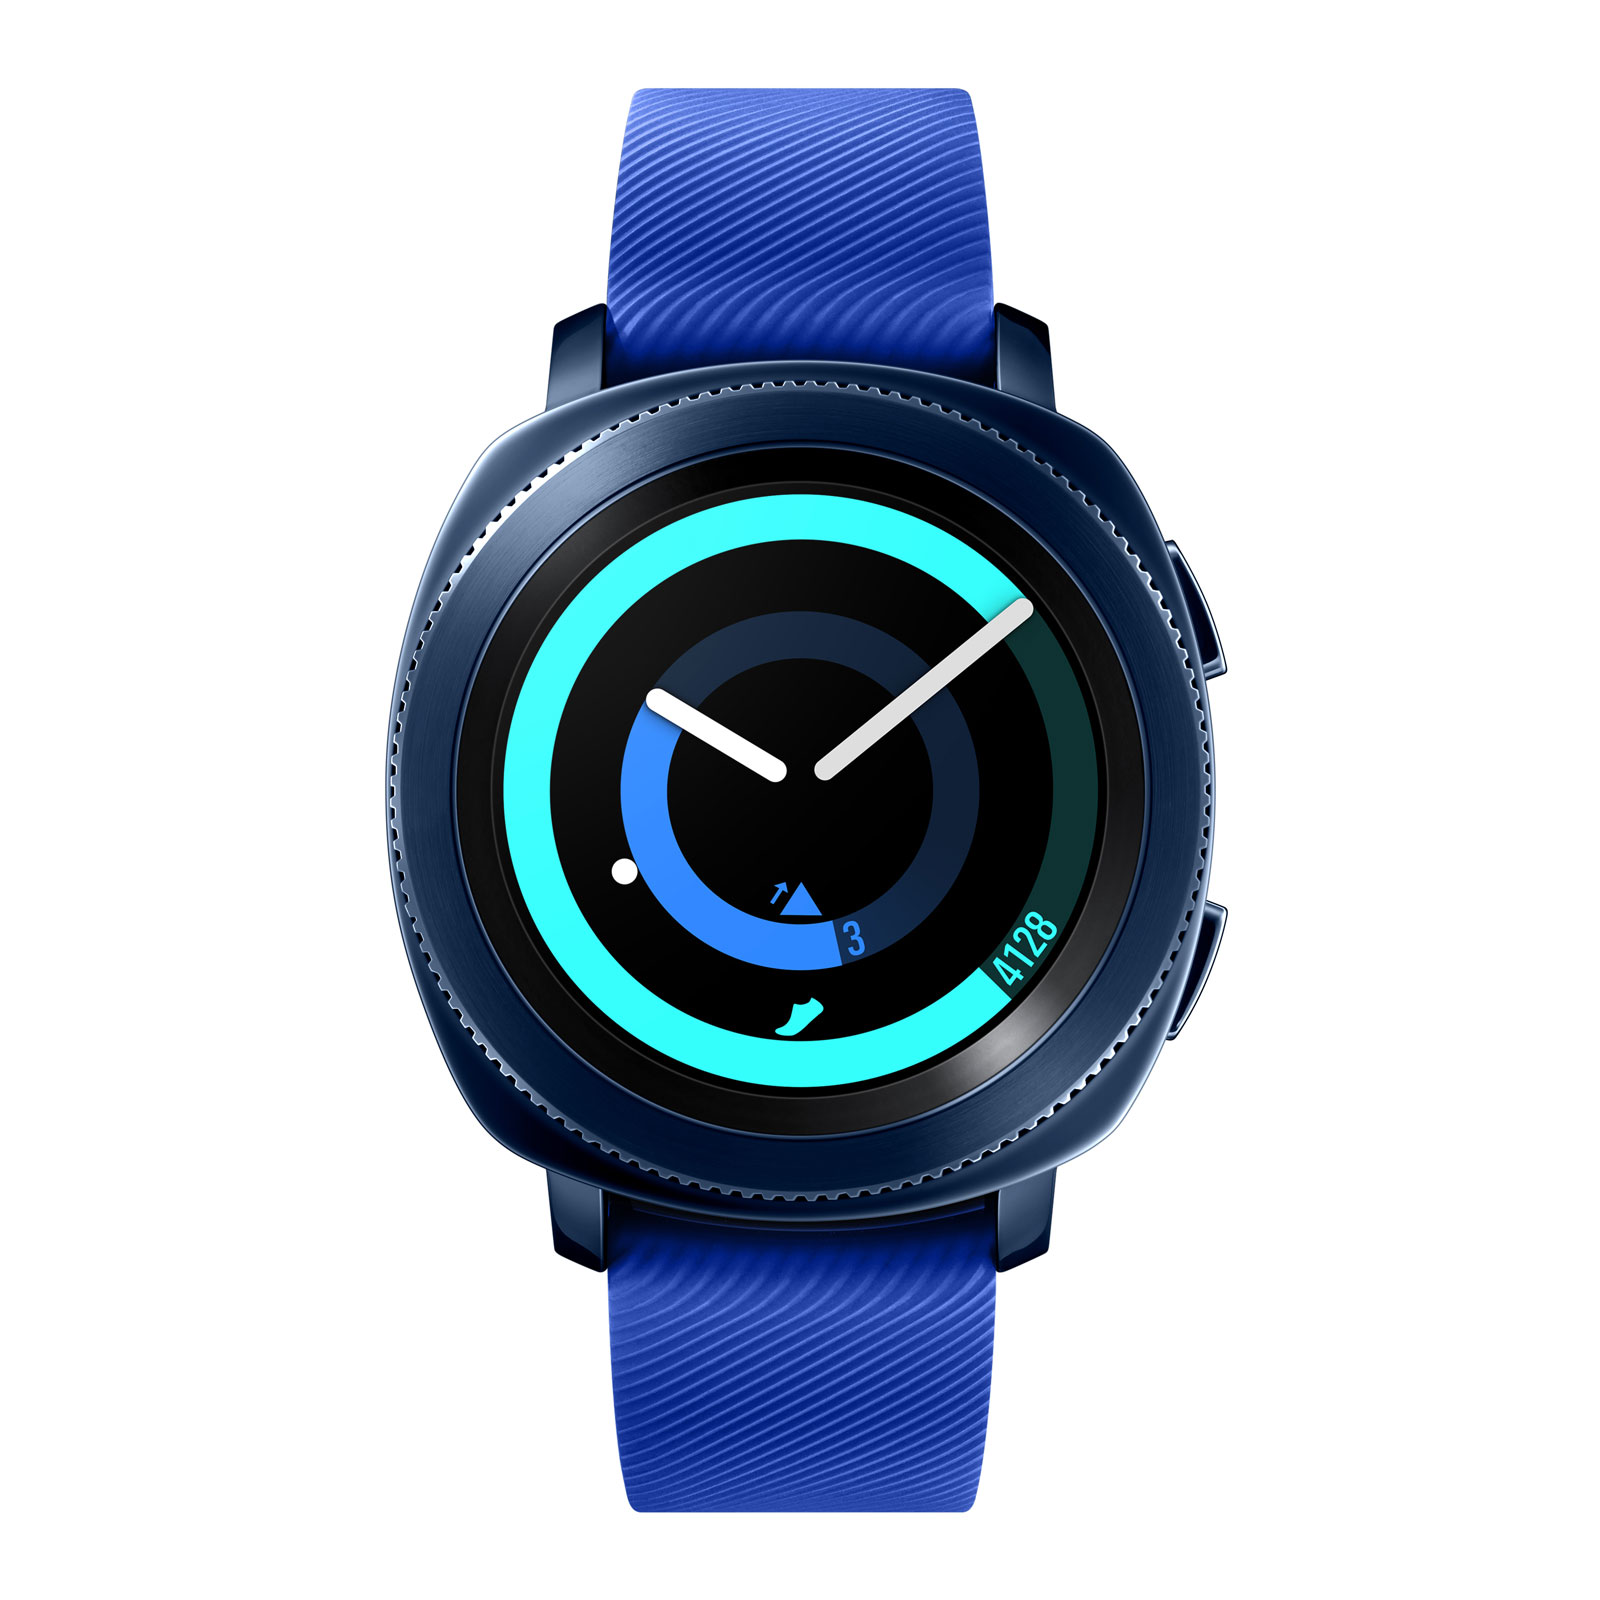 samsung gear sport bleu nuit montre connect e samsung sur. Black Bedroom Furniture Sets. Home Design Ideas